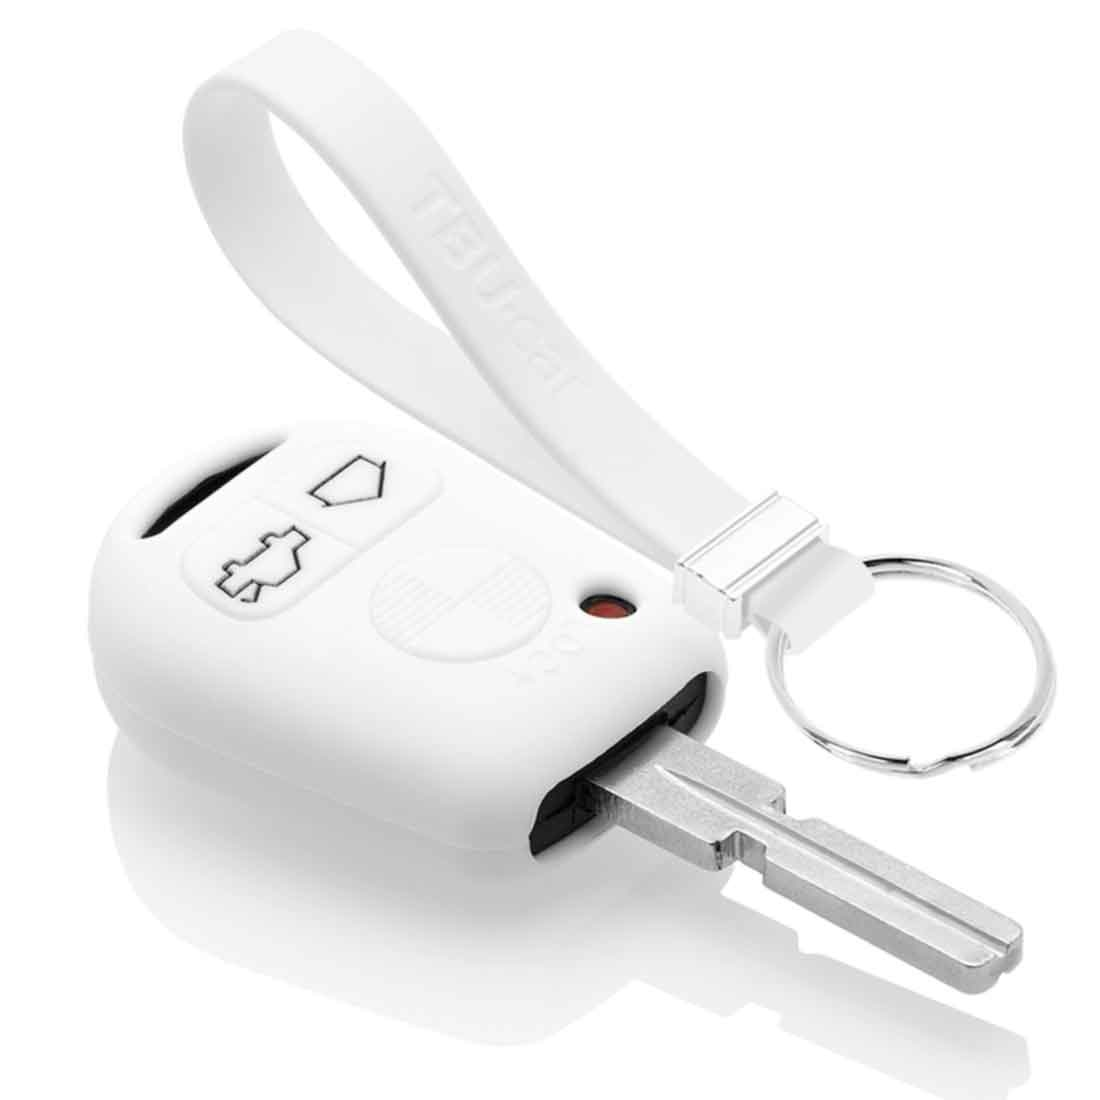 TBU car TBU car Car key cover compatible with BMW - Silicone Protective Remote Key Shell - FOB Case Cover - White